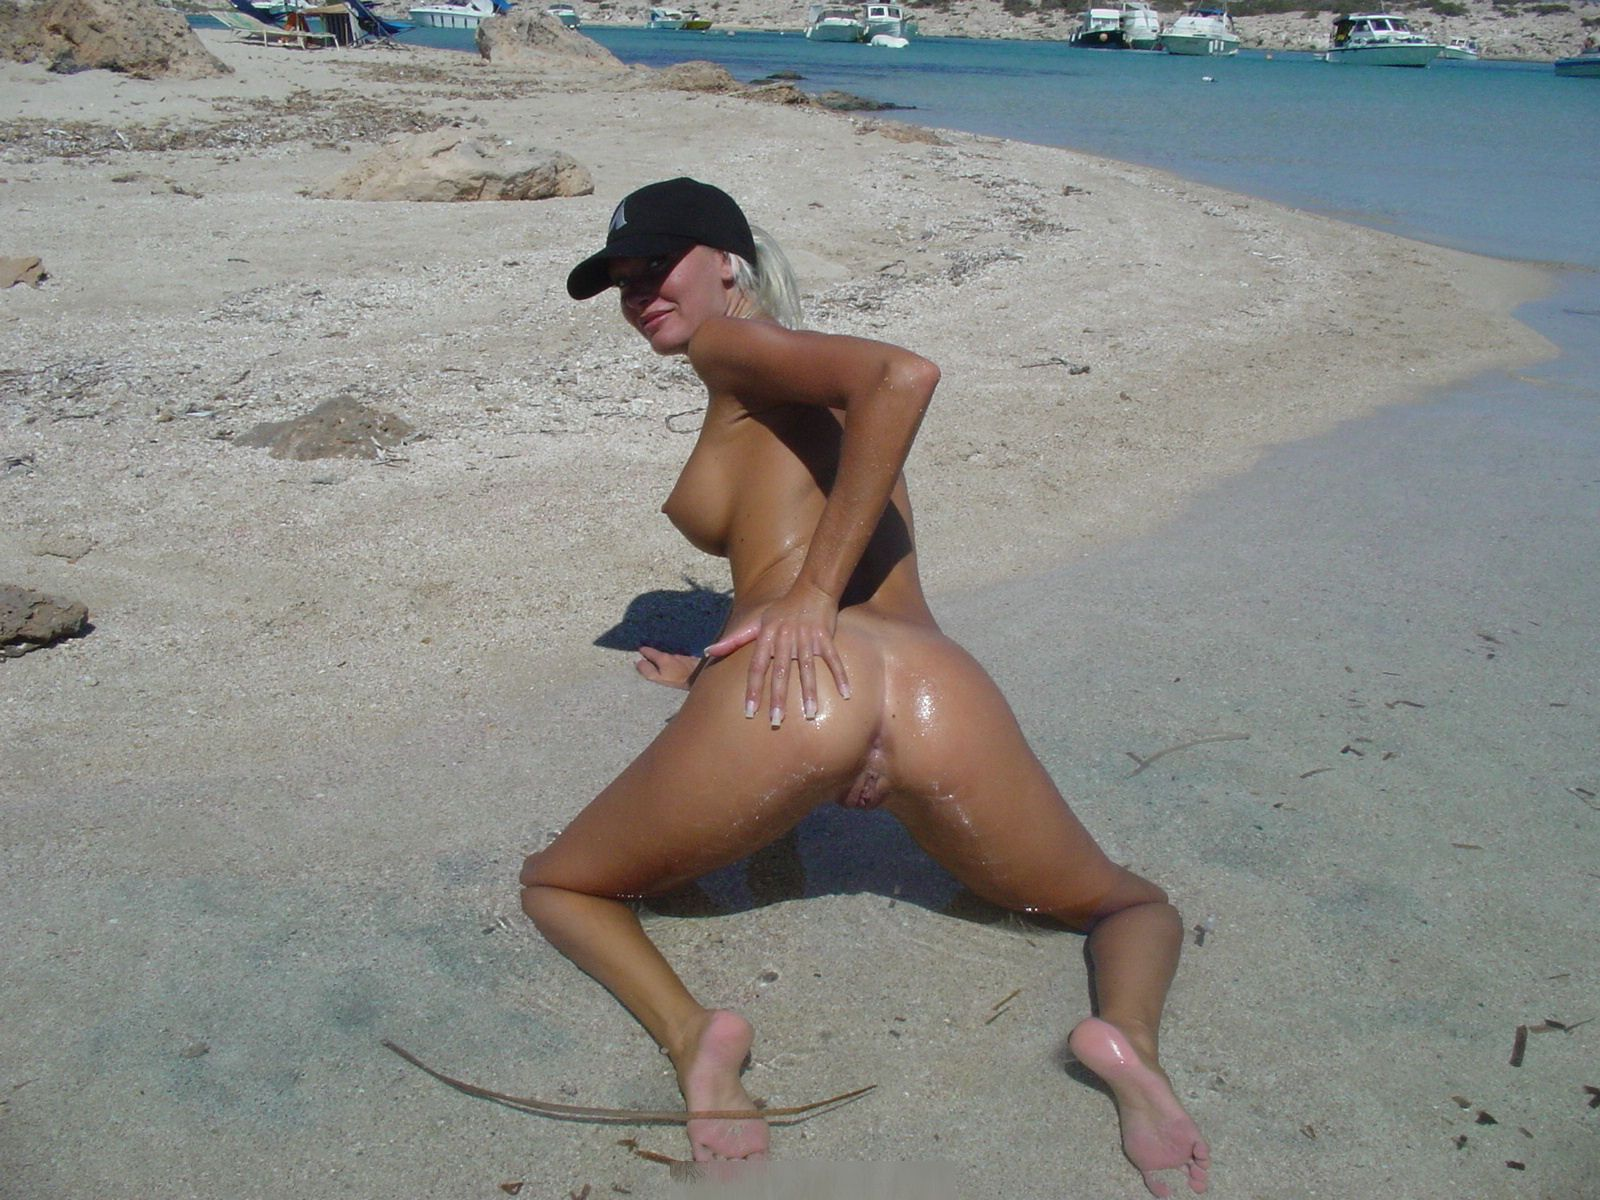 Butt nude naked beach ass